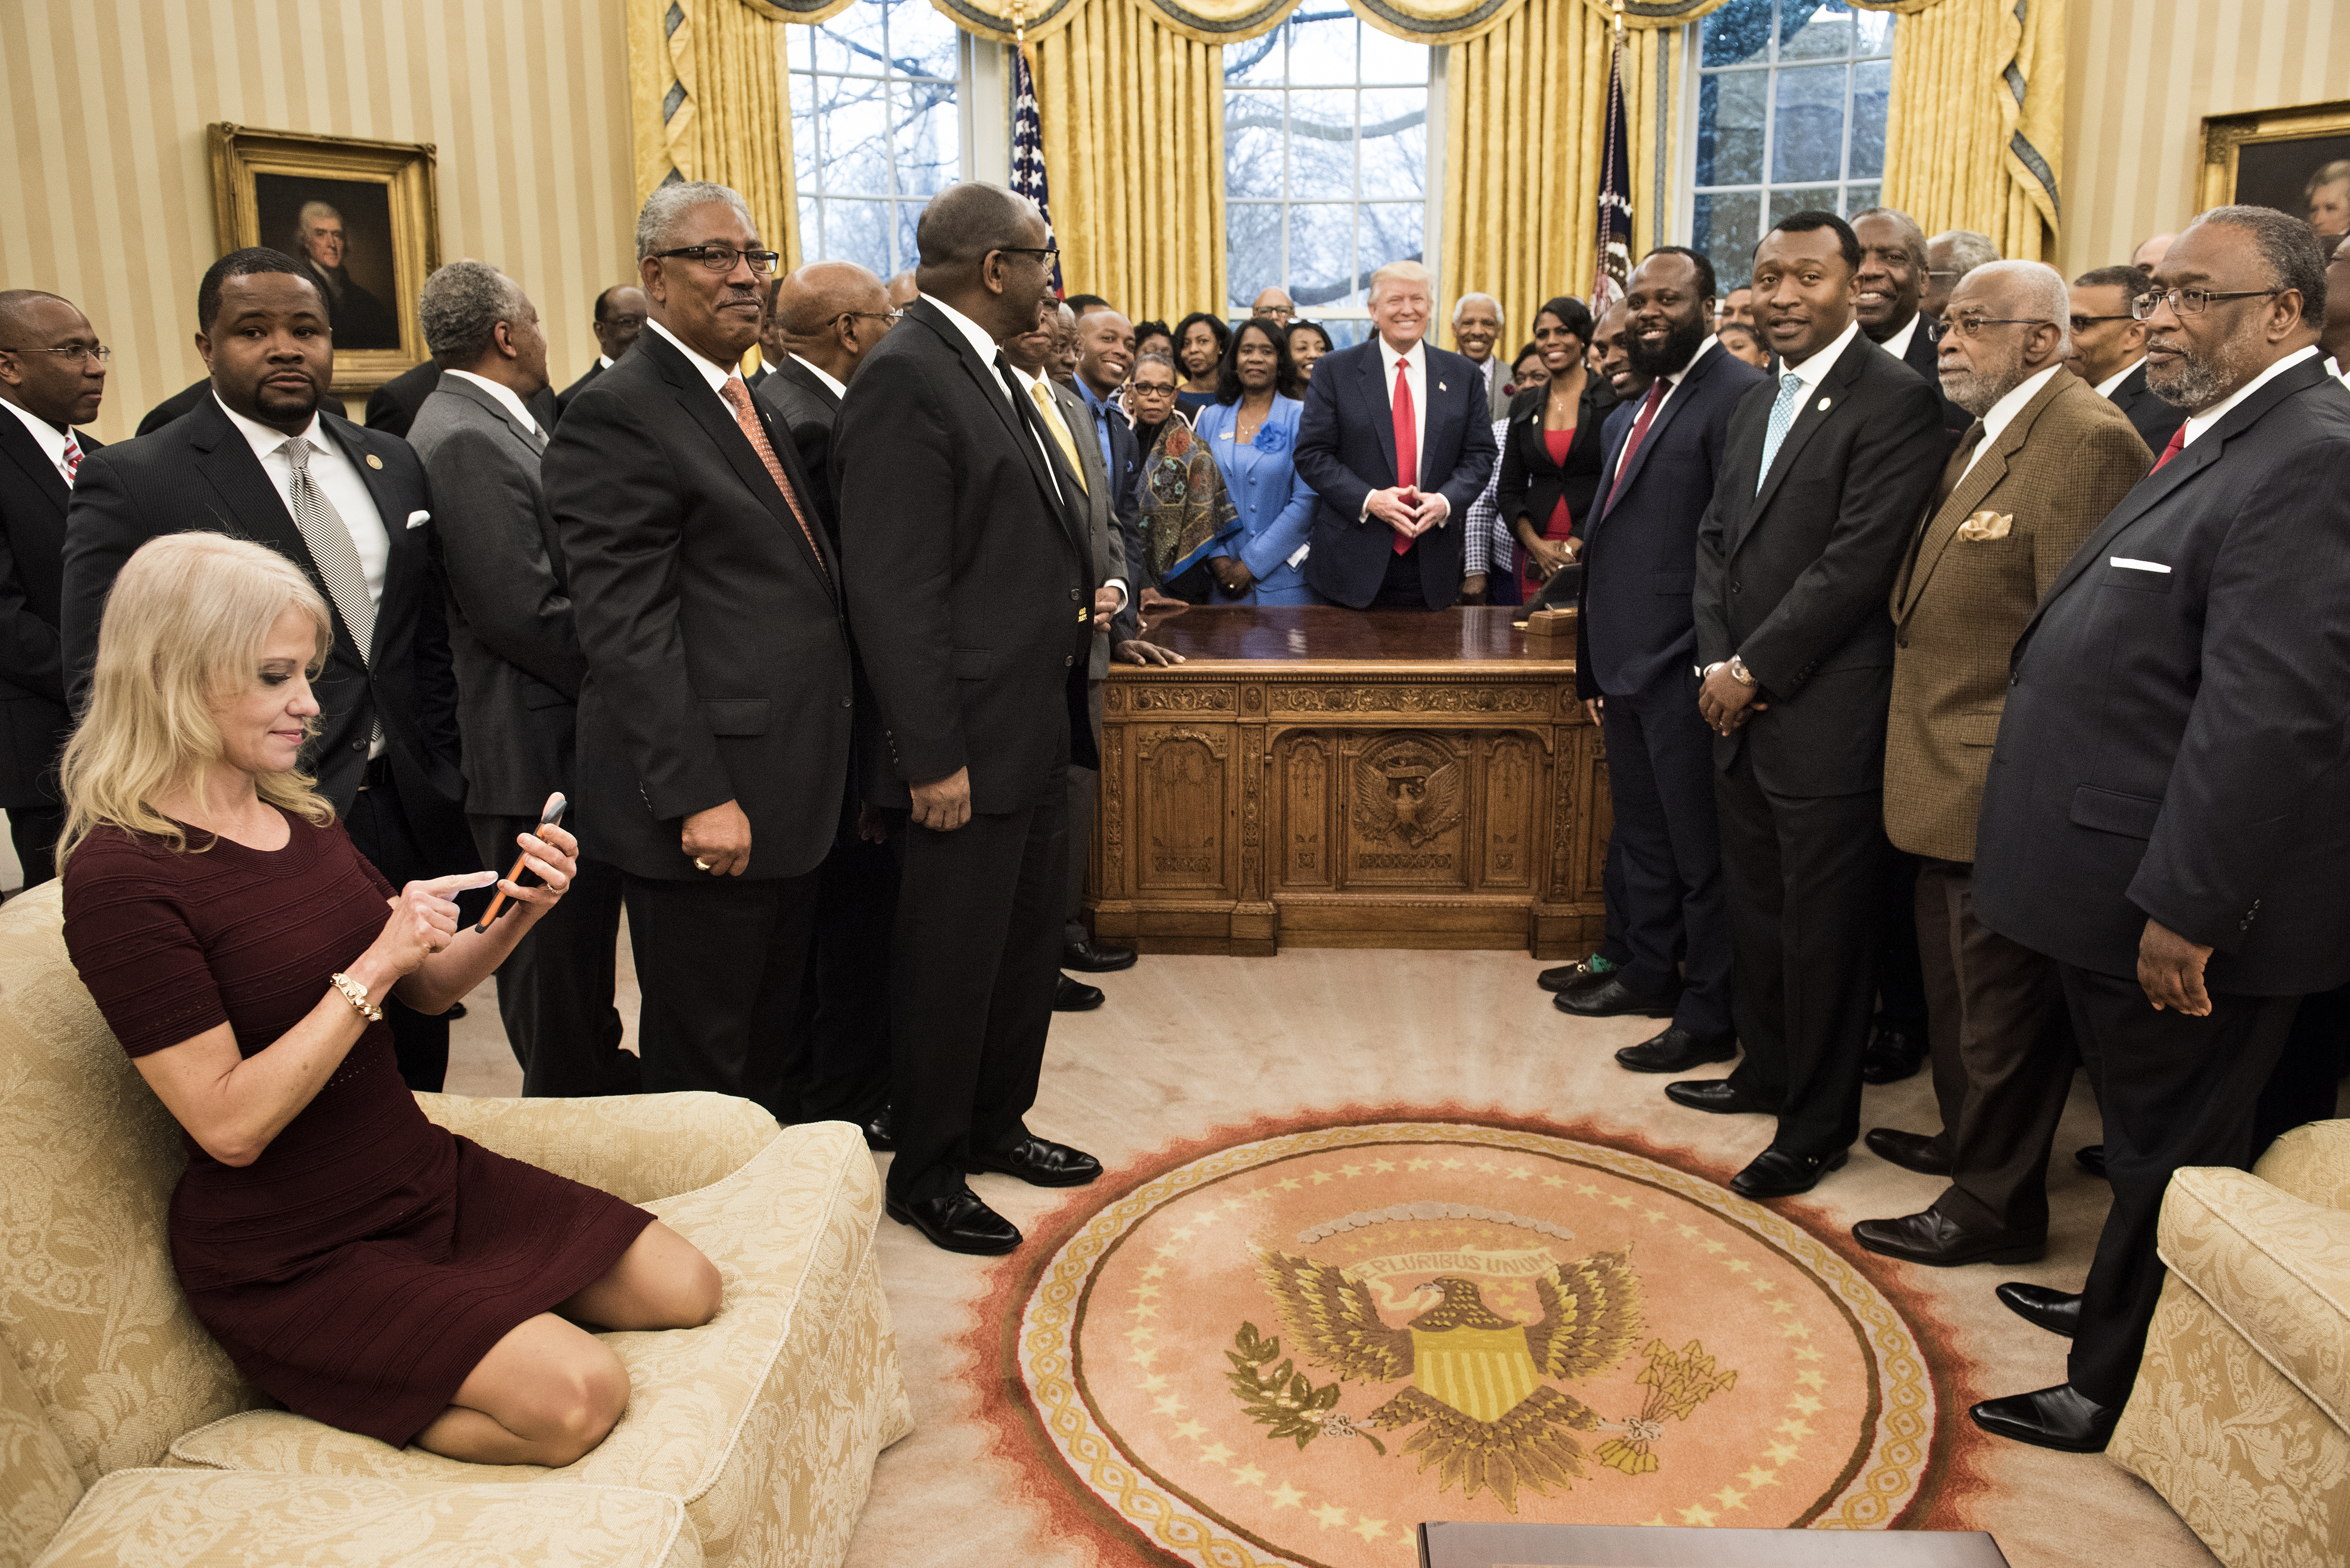 Counselor to the President Kellyanne Conway (L) checks her phone after taking a photo as US President Donald Trump and leaders of historically black universities and colleges pose for a group photo in the Oval Office of the White House before a meeting with US Vice President Mike Pence February 27, 2017 in Washington, DC. / AFP PHOTO / Brendan Smialowski